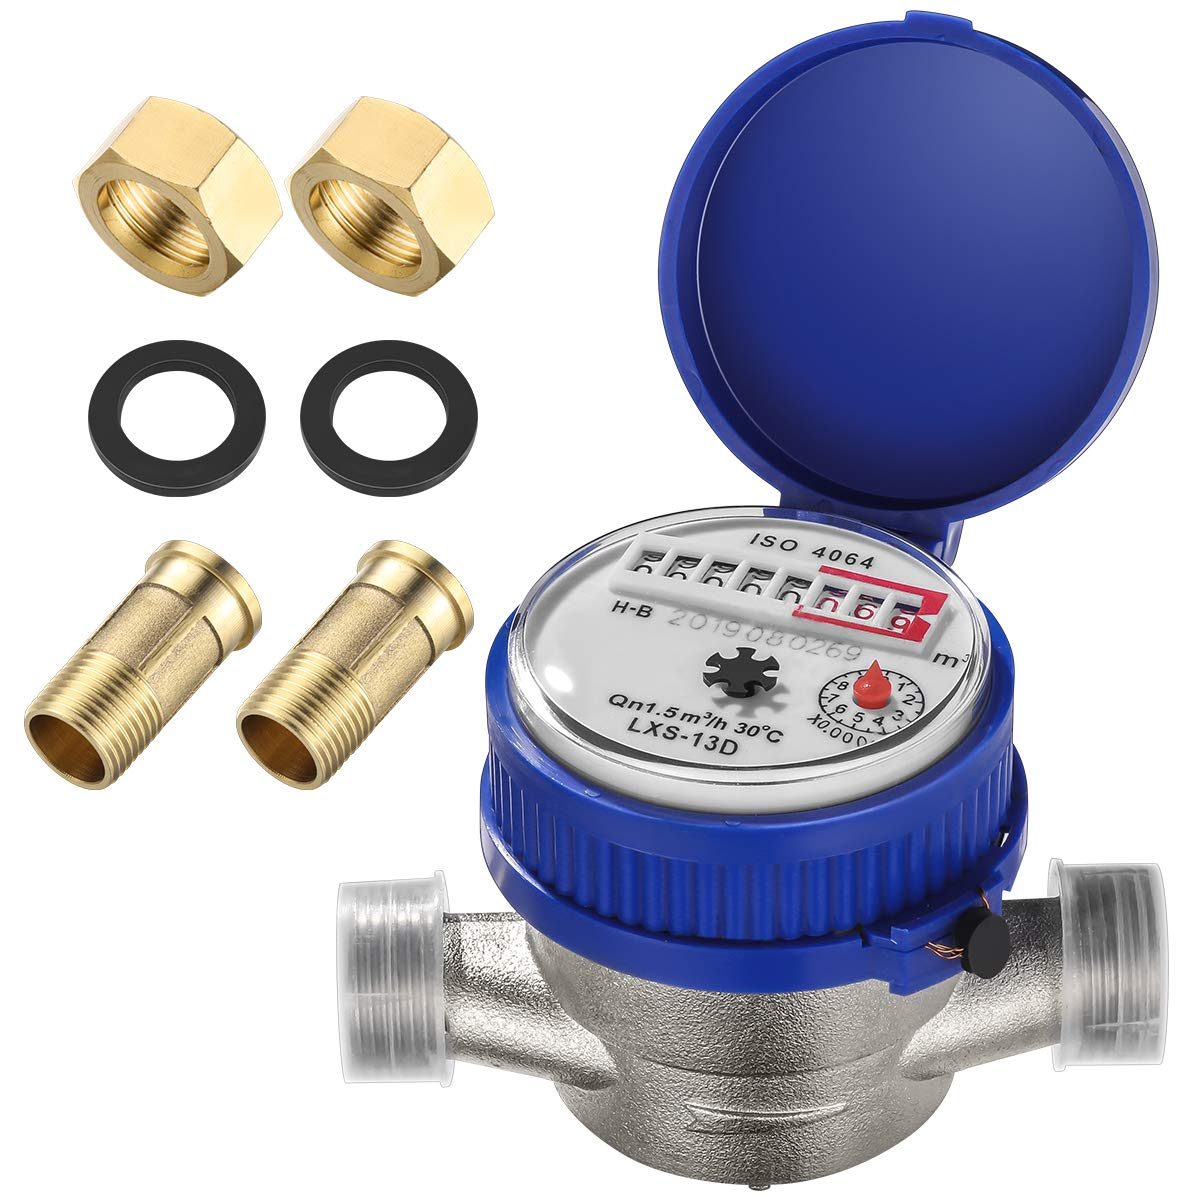 Hemobllo Water Meter Water Flow Meter Cold Water Meter for Garden and Home use